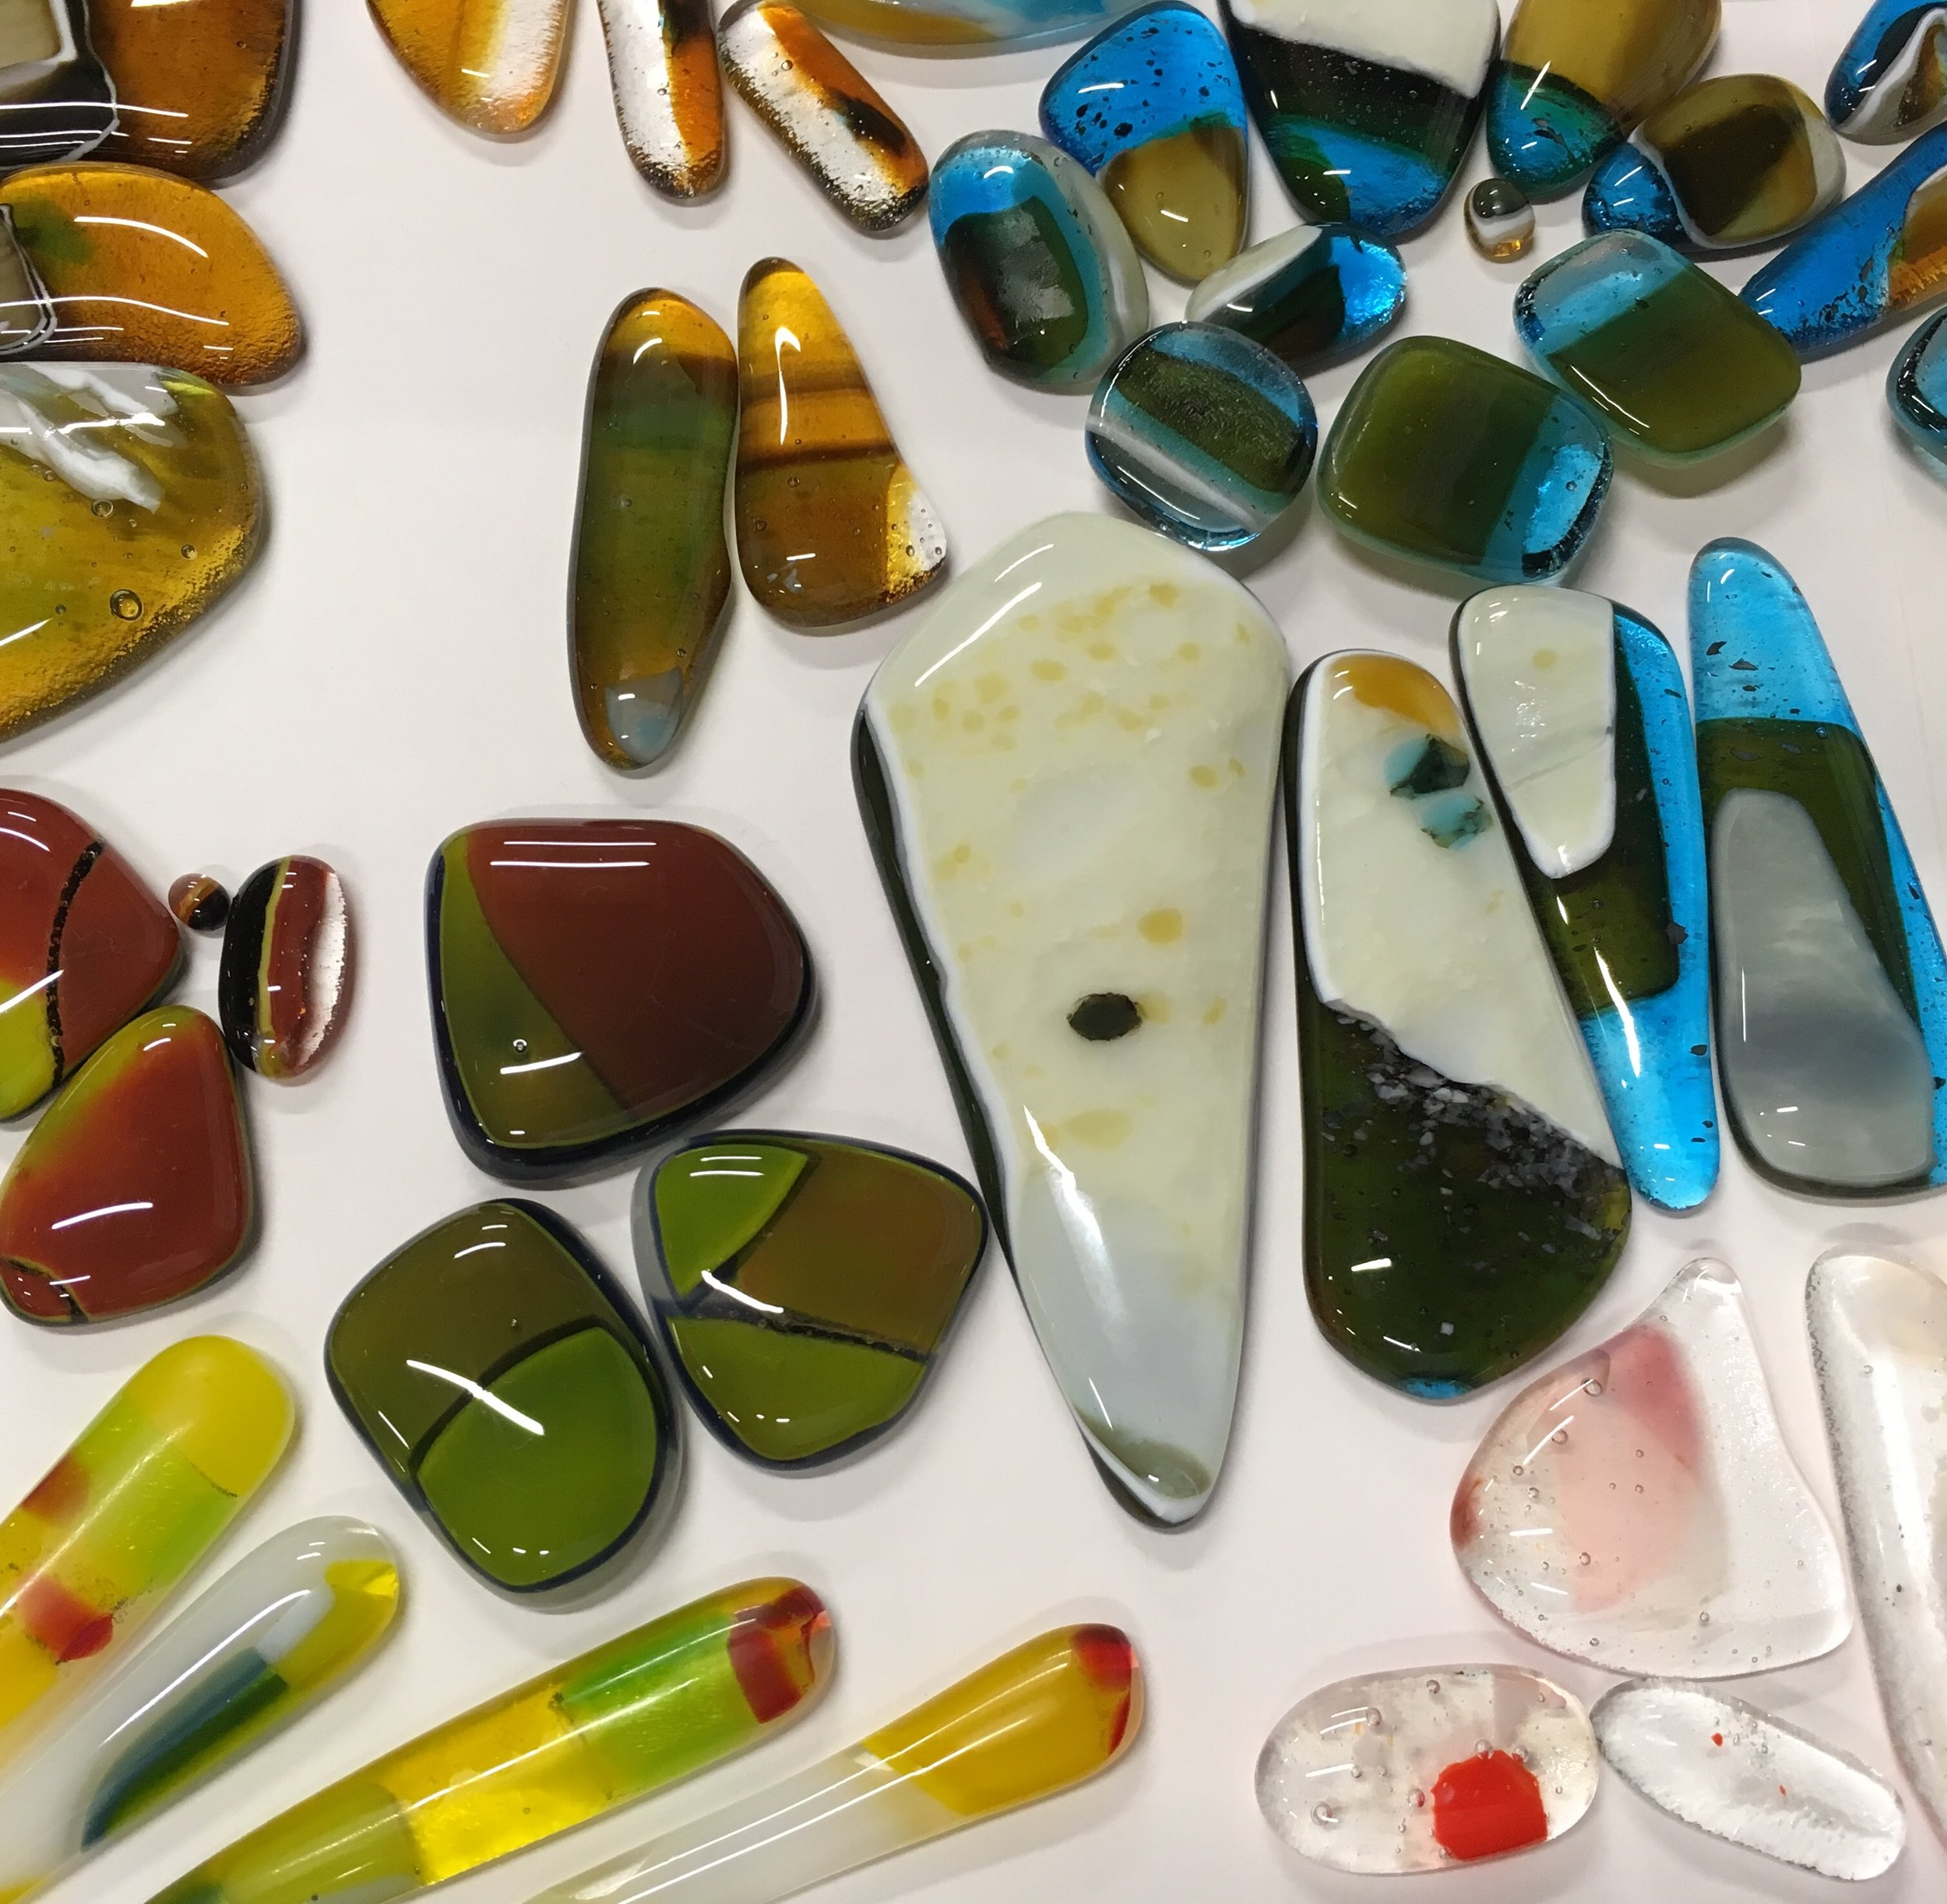 Above is a little teaser of working glass pieces - some will be transformed into single cabs or multiple glass compositions. The new glass jewelry line will start with  Statement Necklaces .